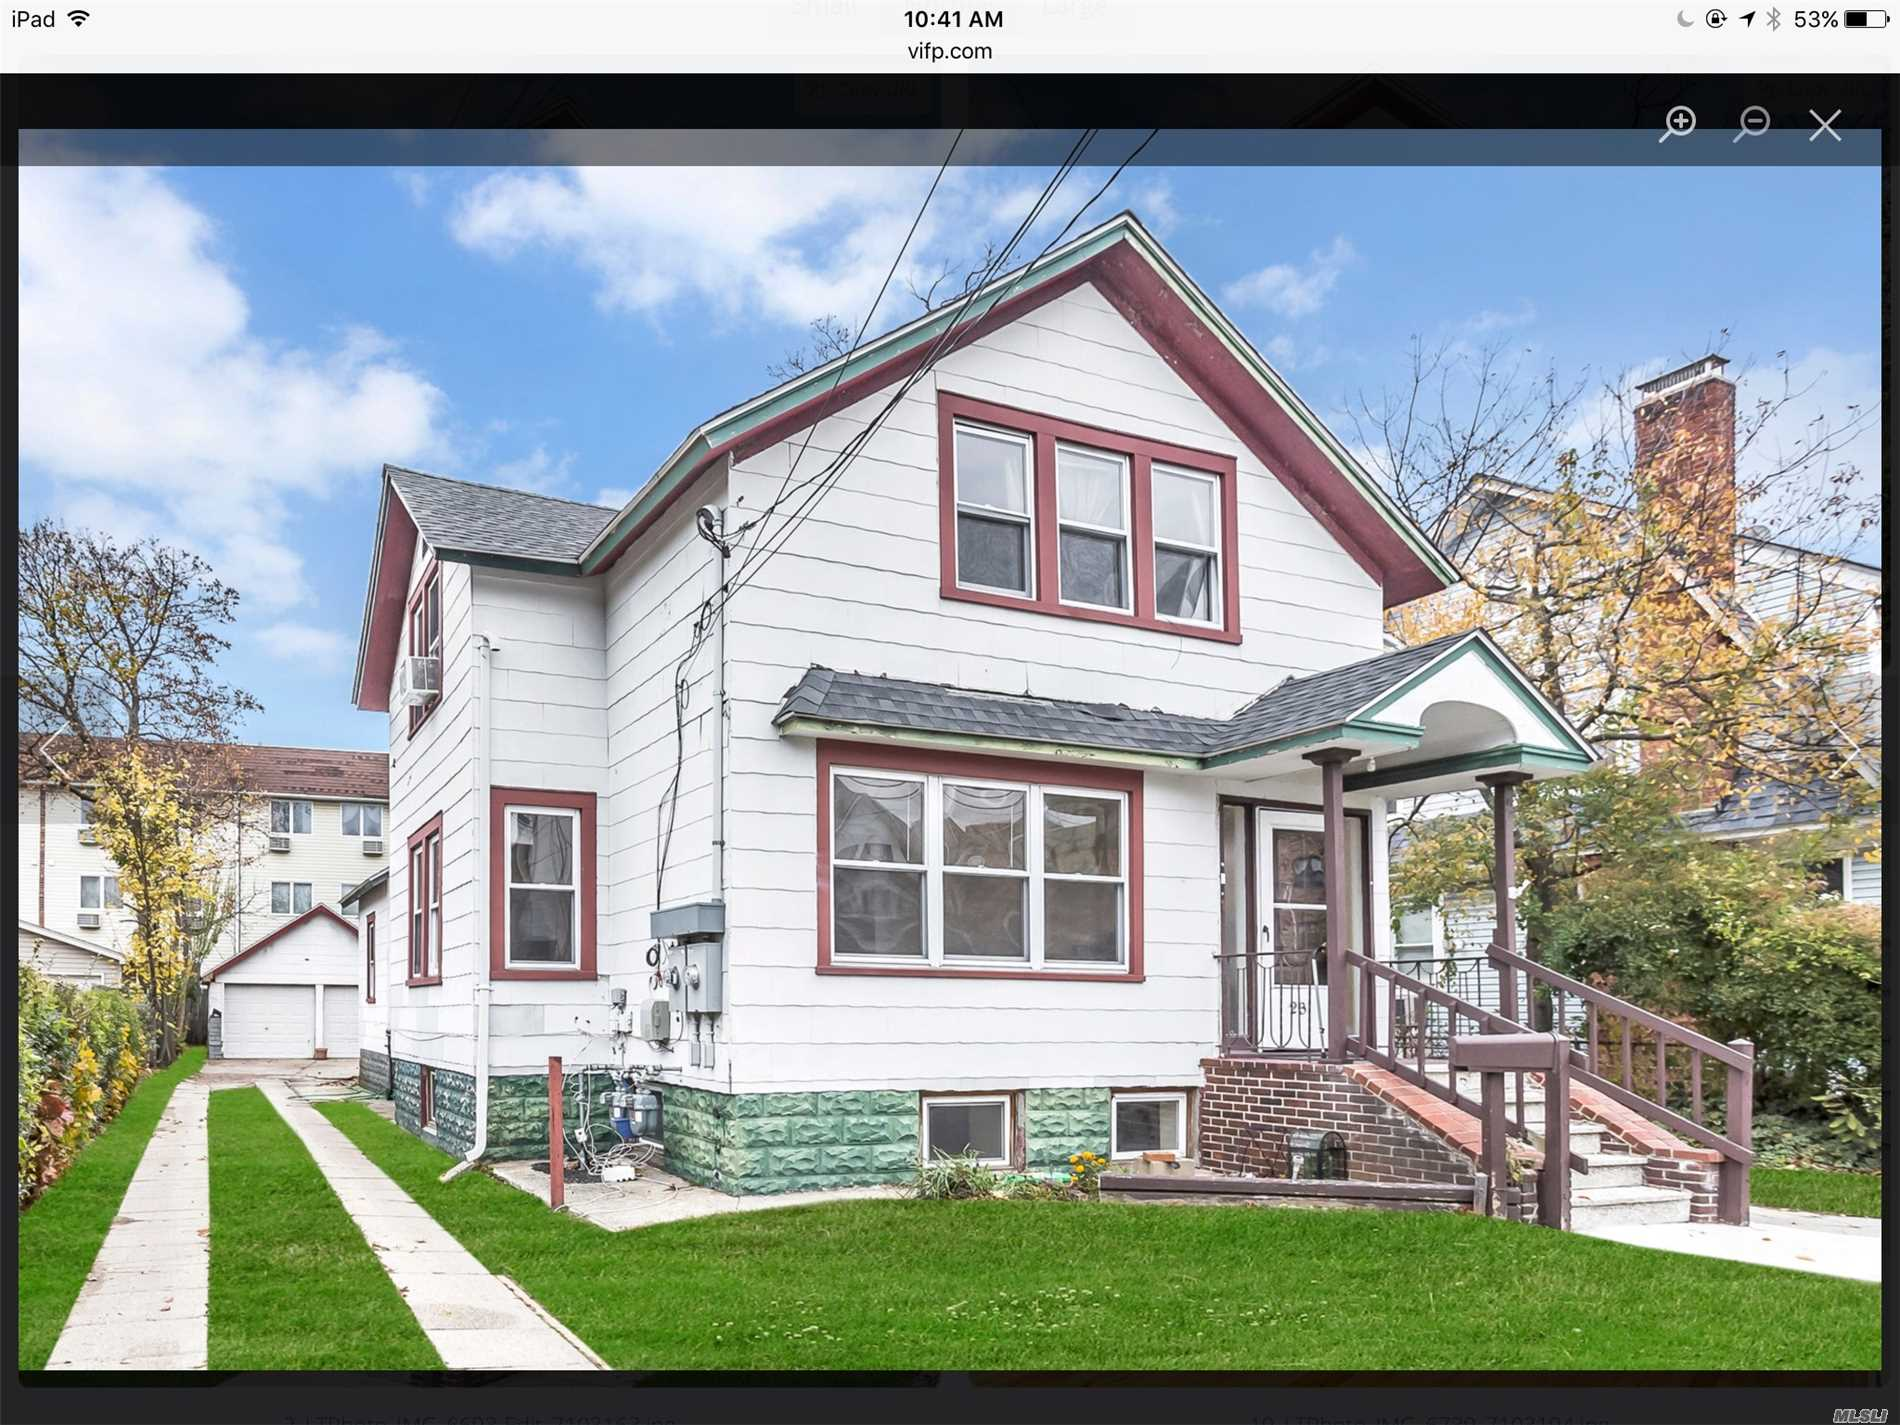 A 6 Bedroom Legal 2 Family Close To Schools, Transport, Businesses. Each Floor Has Their Own Boiler And Washer/Dryer. 2 Car Garage And Private Driveway.